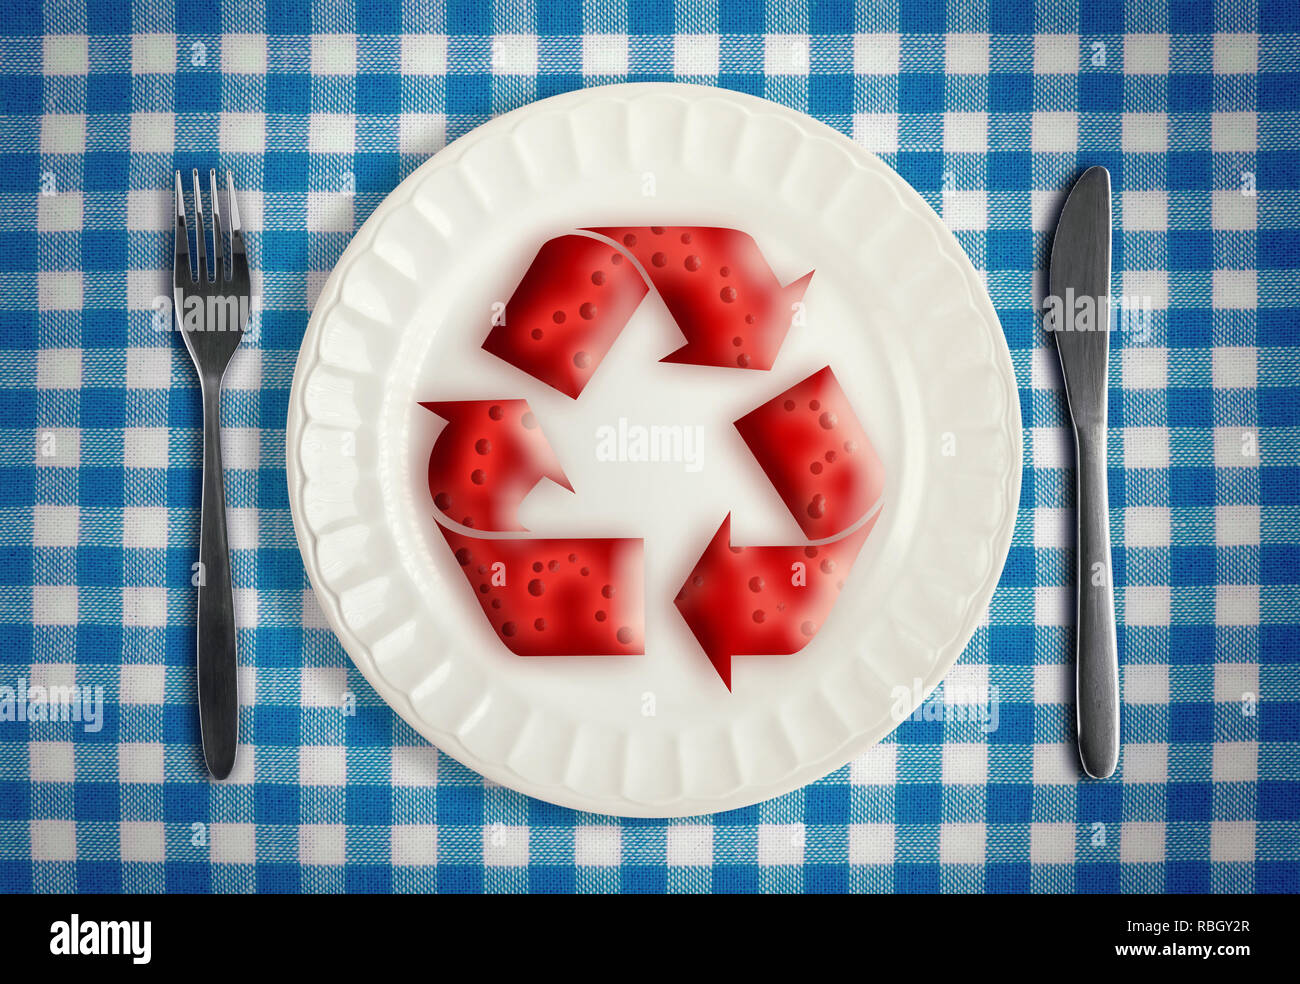 Autophagy during fasting concept with cells in red renewal symbol on white plate on blue checkered table cloth with knife and fork, top view - Stock Image